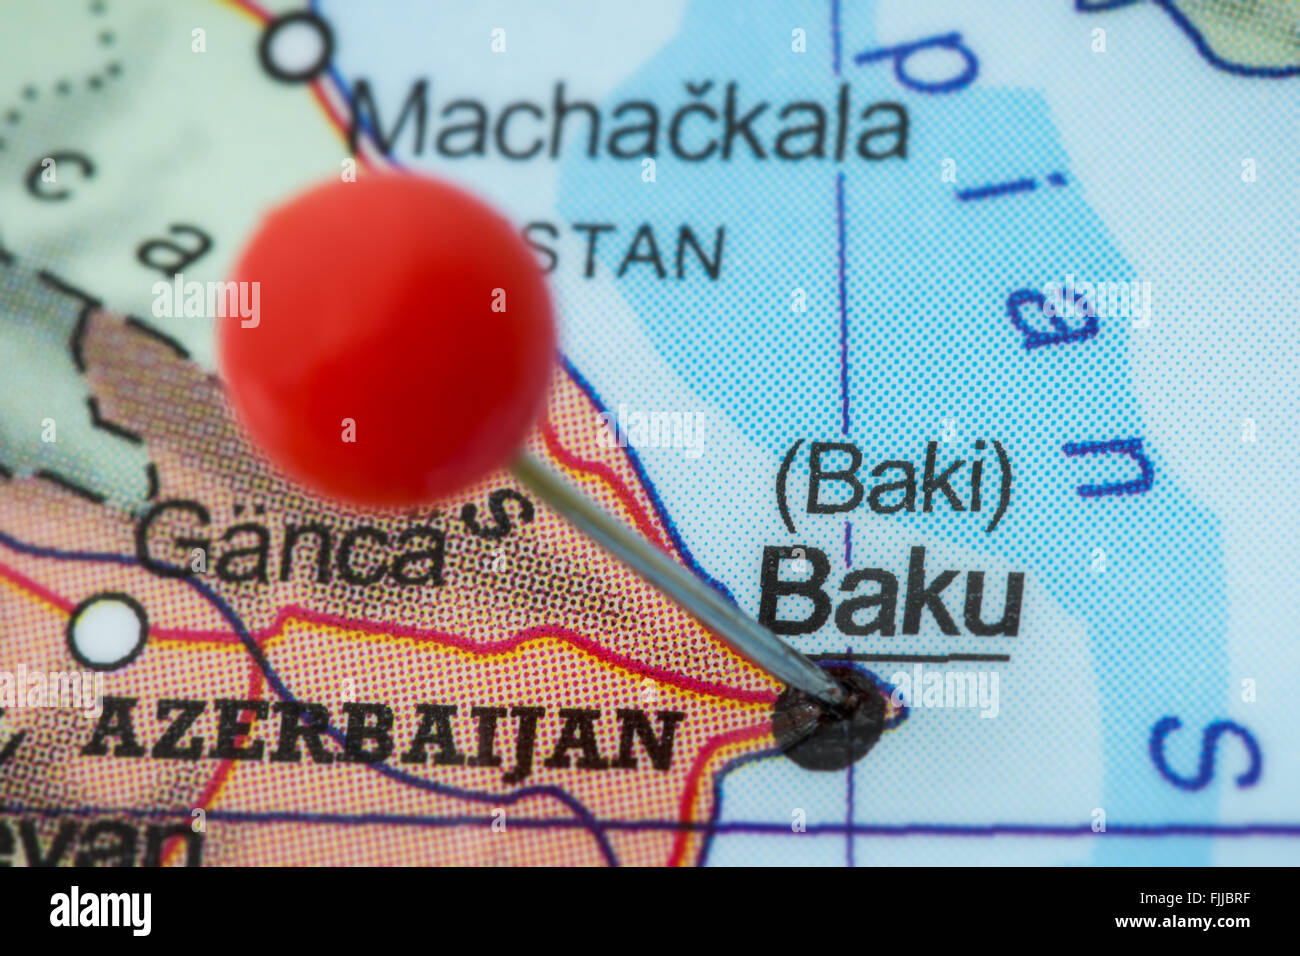 Close-up of a red pushpin in a map of Baku, Azerbaijan. - Stock Image